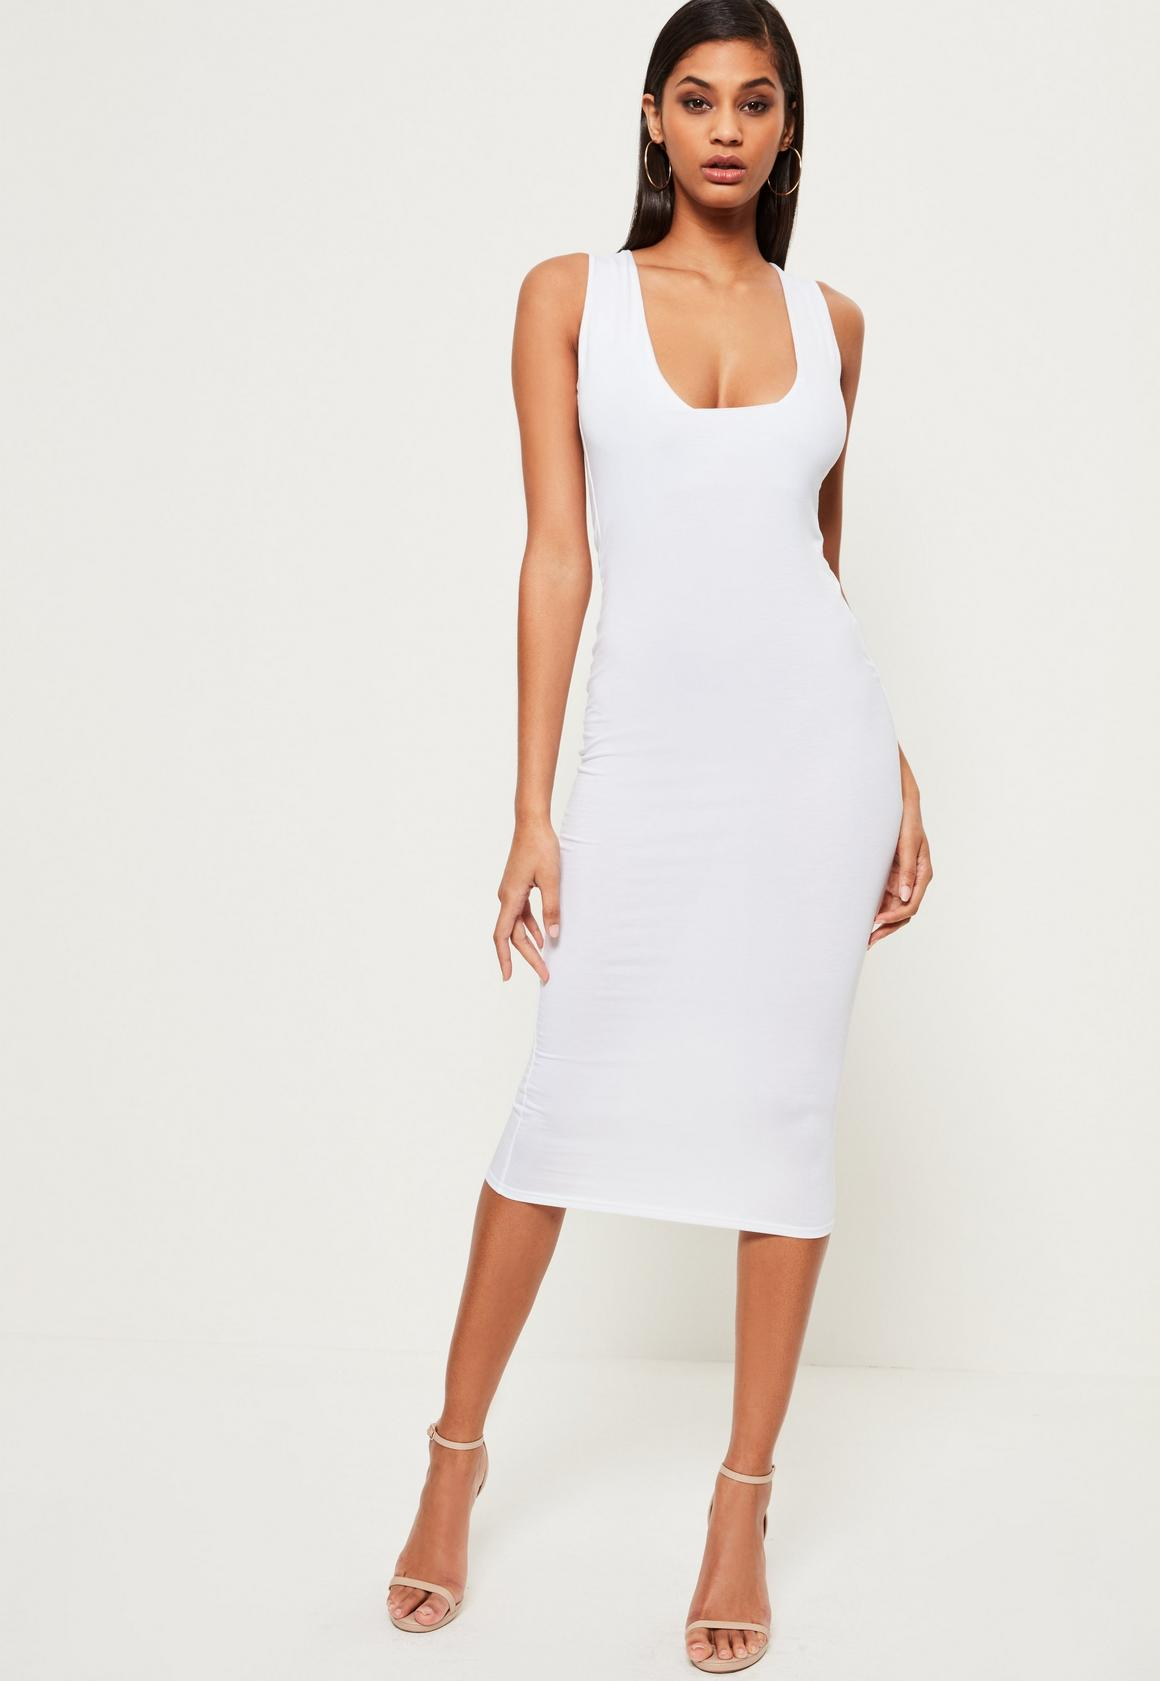 White Midi Dresses | Women's White Midi Dresses Online - Missguided